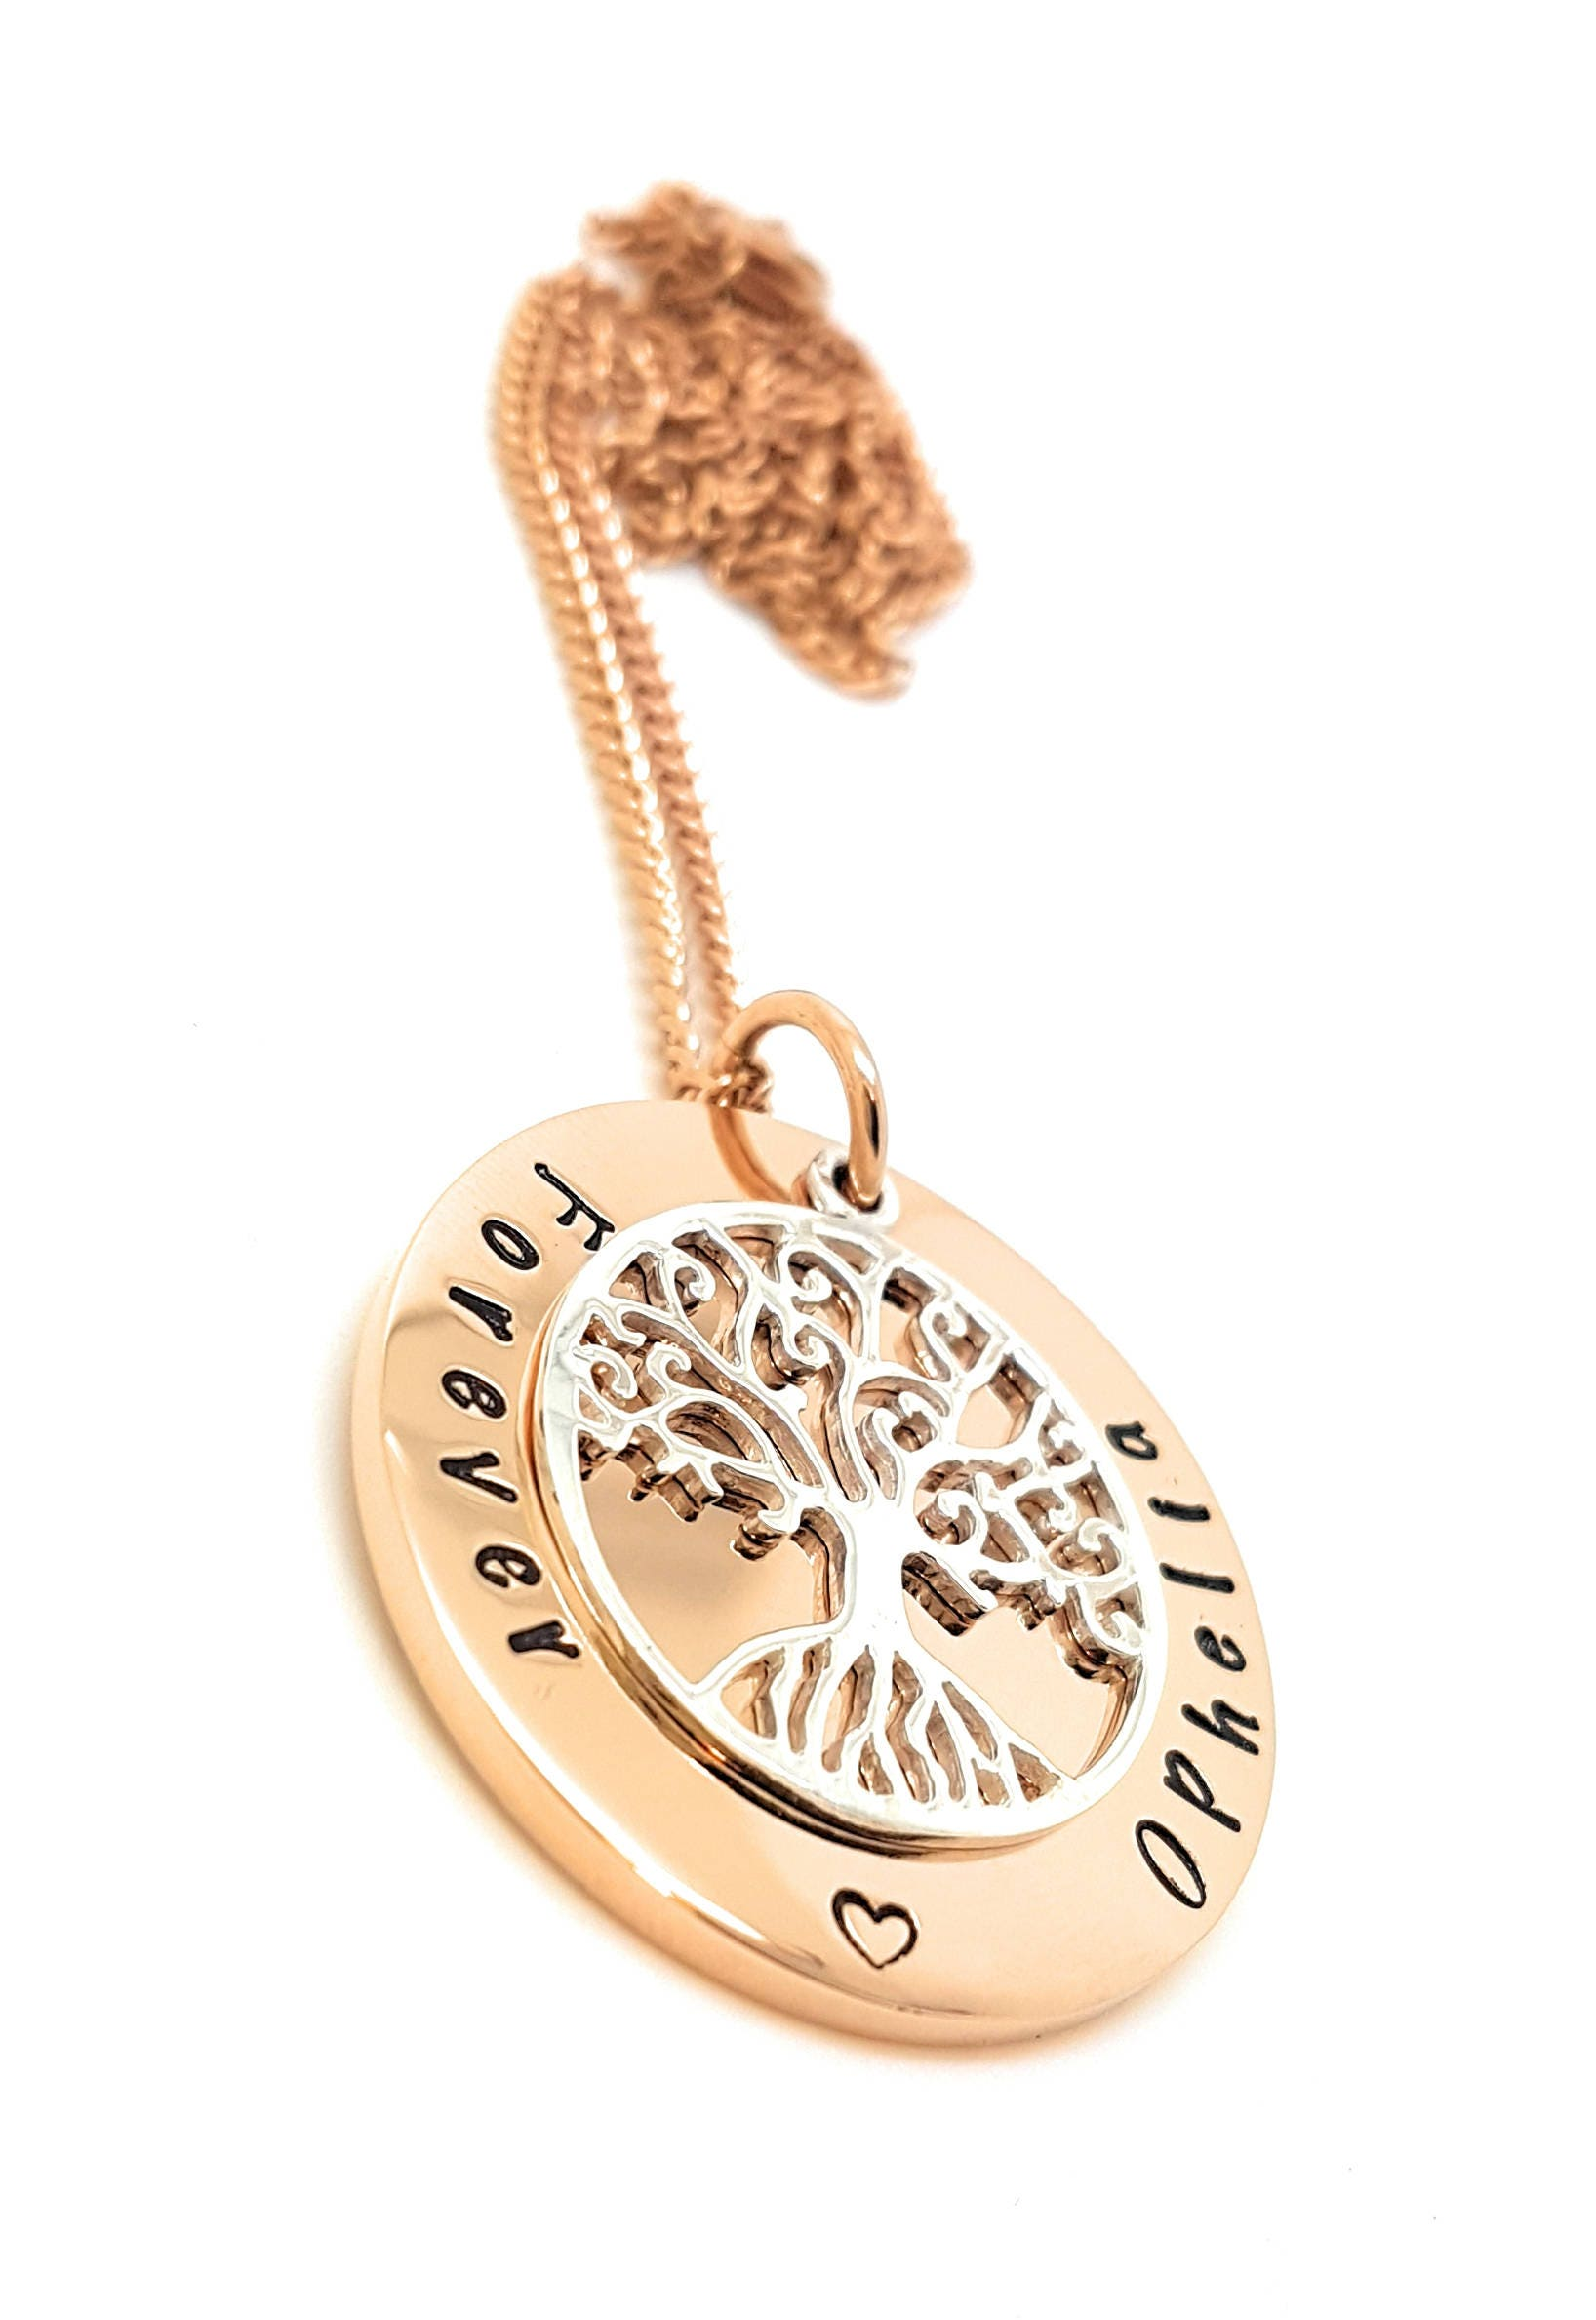 Family names tree of life pendant personalised jewellery hand name pendants tree of life australia gallery photo gallery photo gallery photo aloadofball Gallery